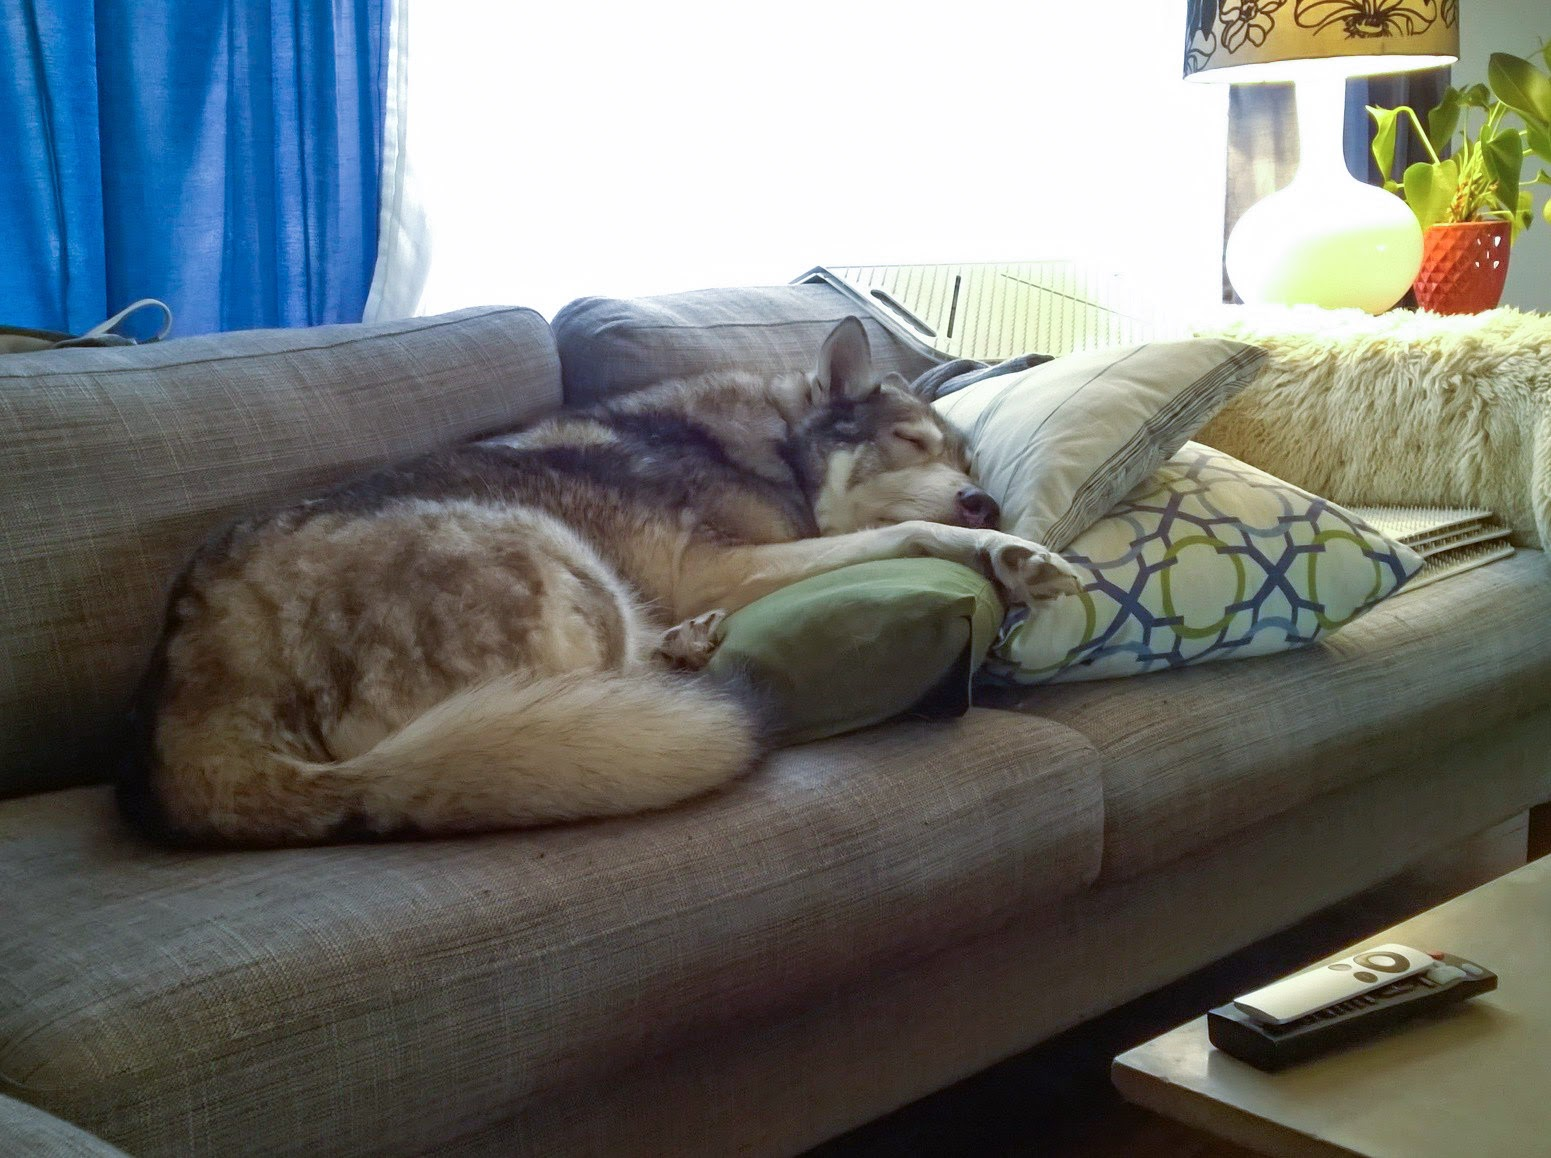 malamute asleep on the sofa